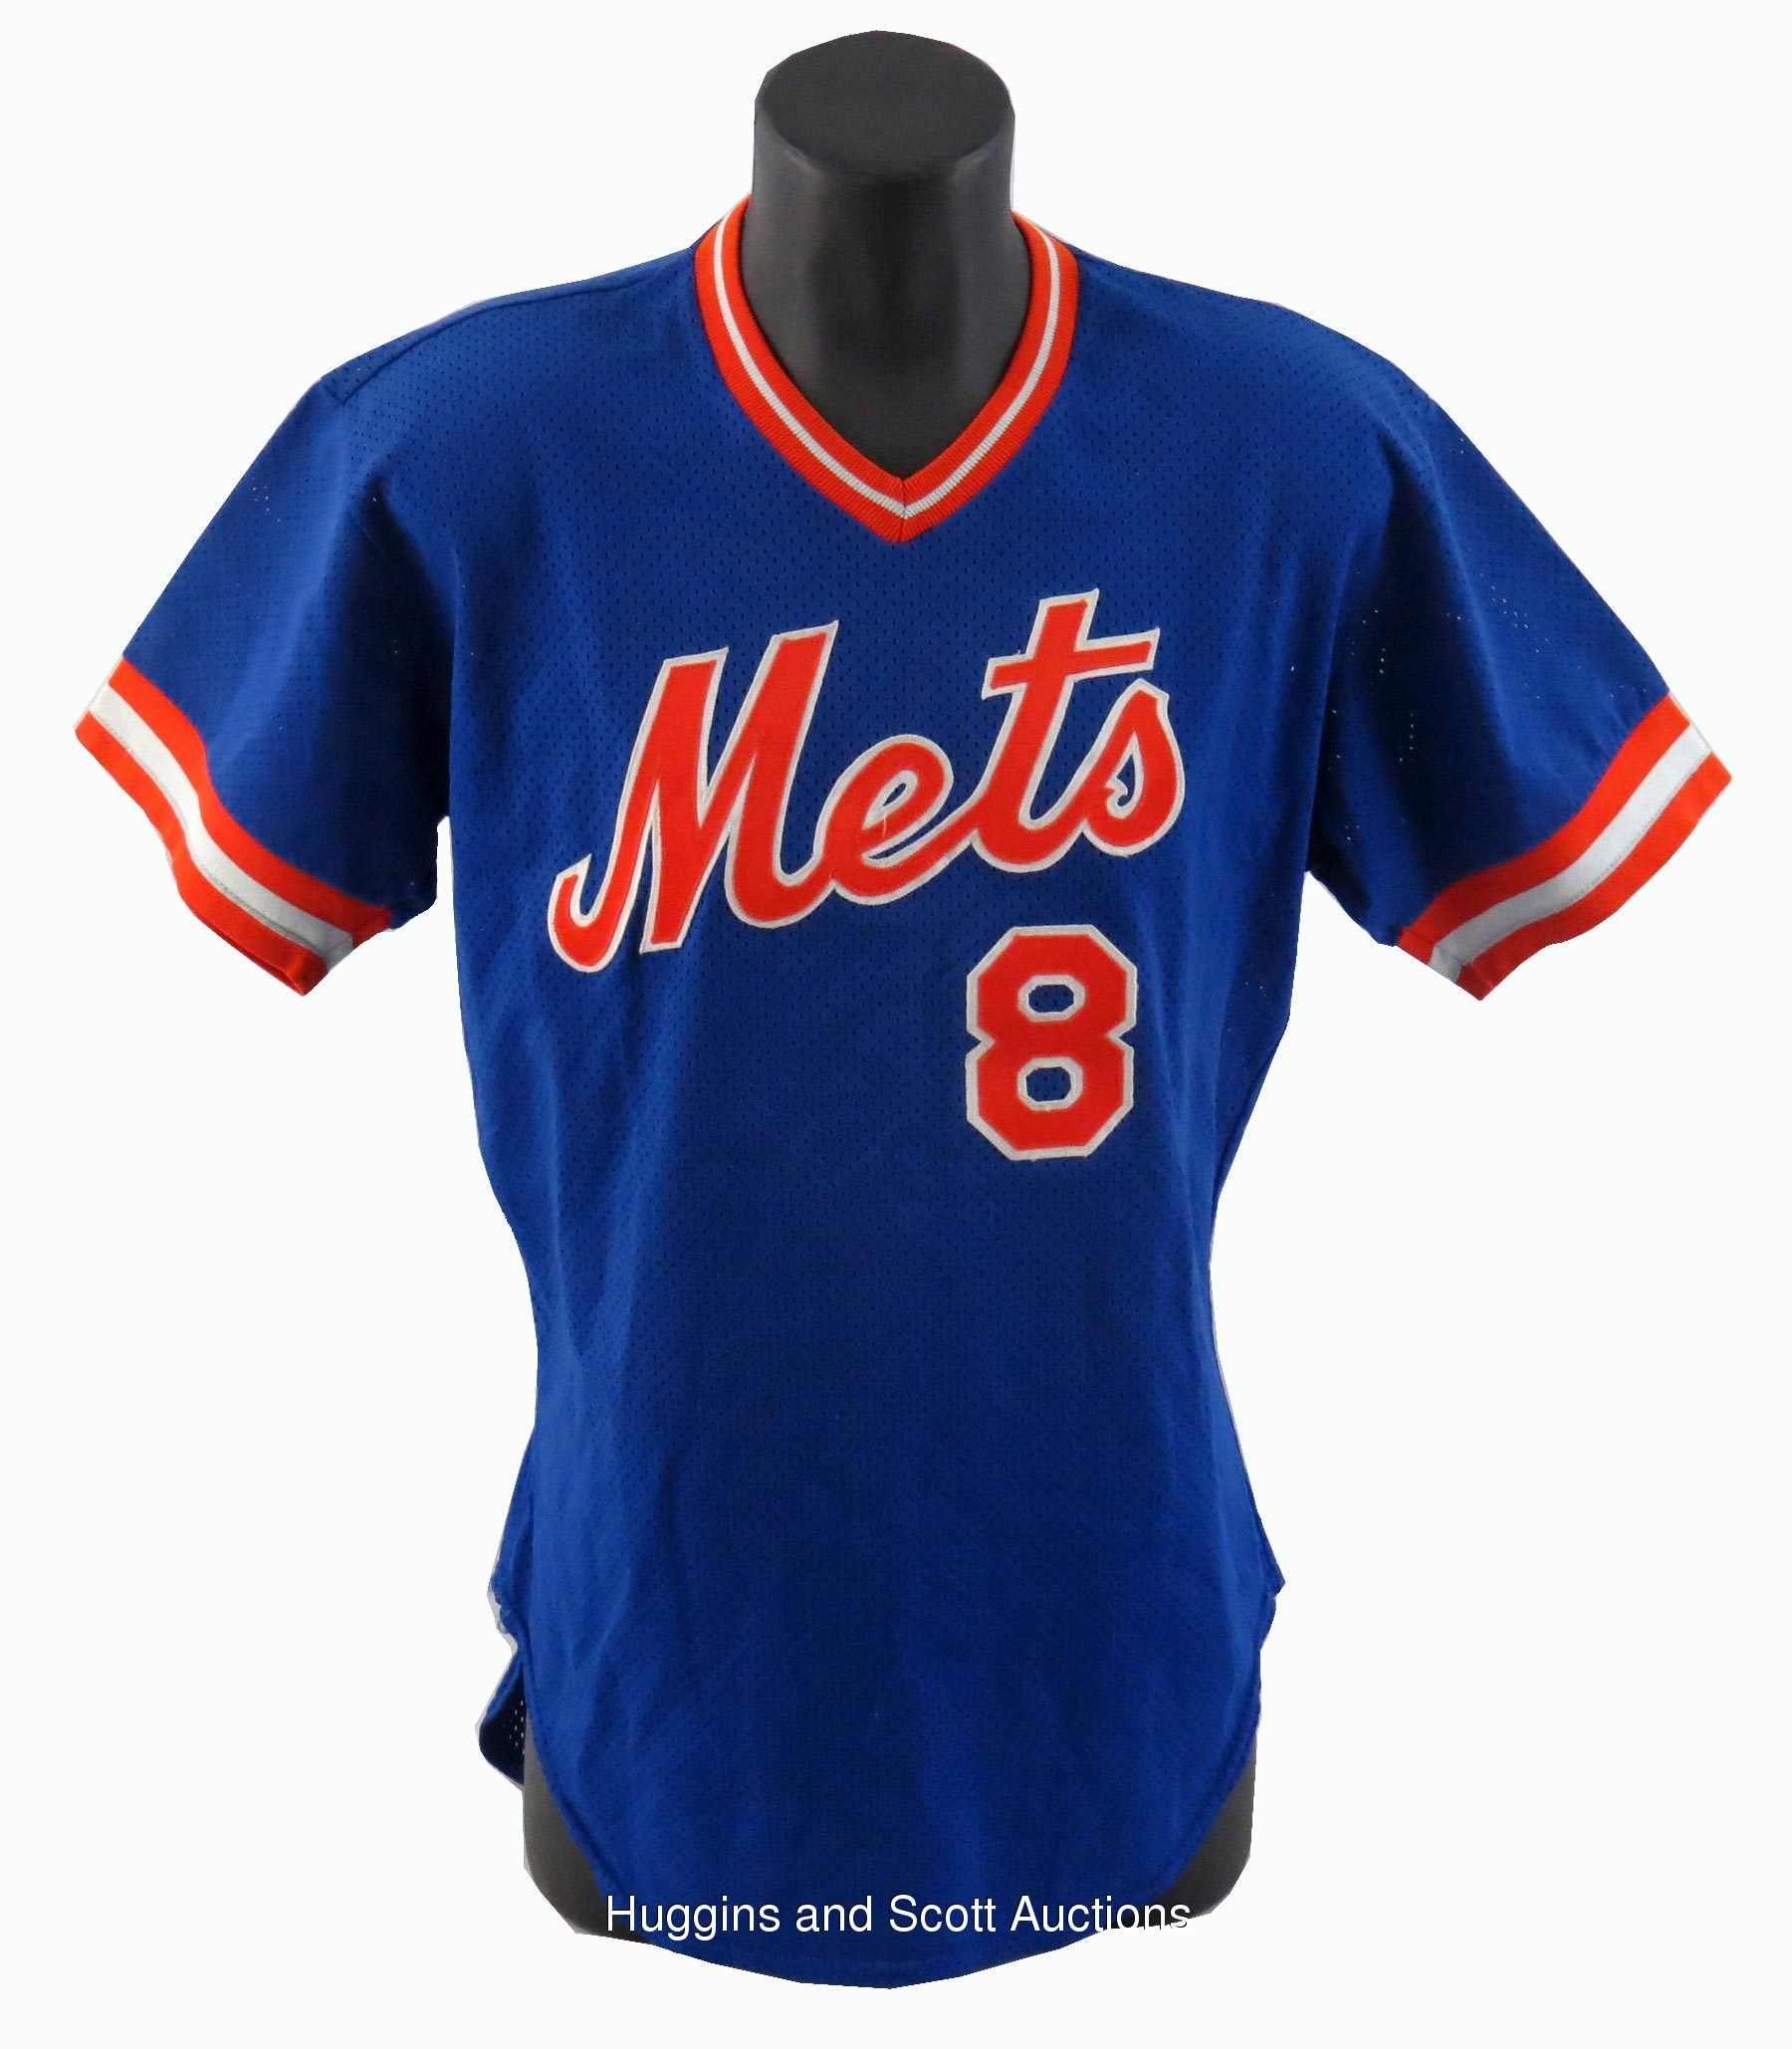 the best attitude 7aef4 84216 Gary Carter 1985 Signed Game-Worn New York Mets Batting ...